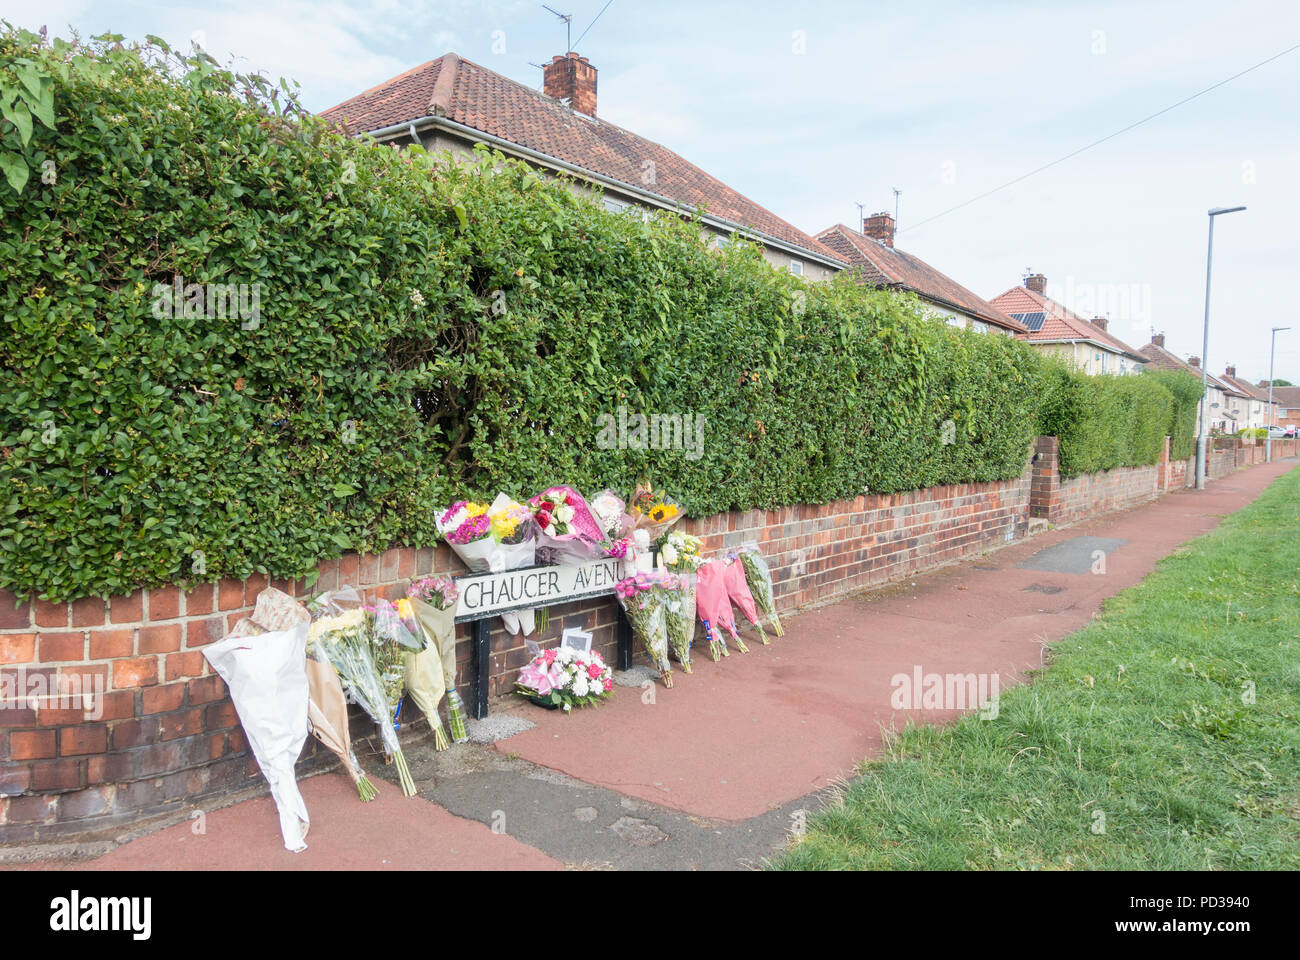 Hartlepool north east  England. United Kingdom. 6th August, 2018. Flower tributes are placed close to  the murder scene where 29 year old Mother of three Kelly Franklin was murdered on Friday evening, 3rd August. Cleveland Police believed the mother had been the victim of a 'targeted' attack after she was found on Oxford Road. 30 year old Torbjorn Kettlewell, also known as Ian, has been charged with murder and possession of a bladed article. Credit: ALAN DAWSON/Alamy Live News - Stock Image